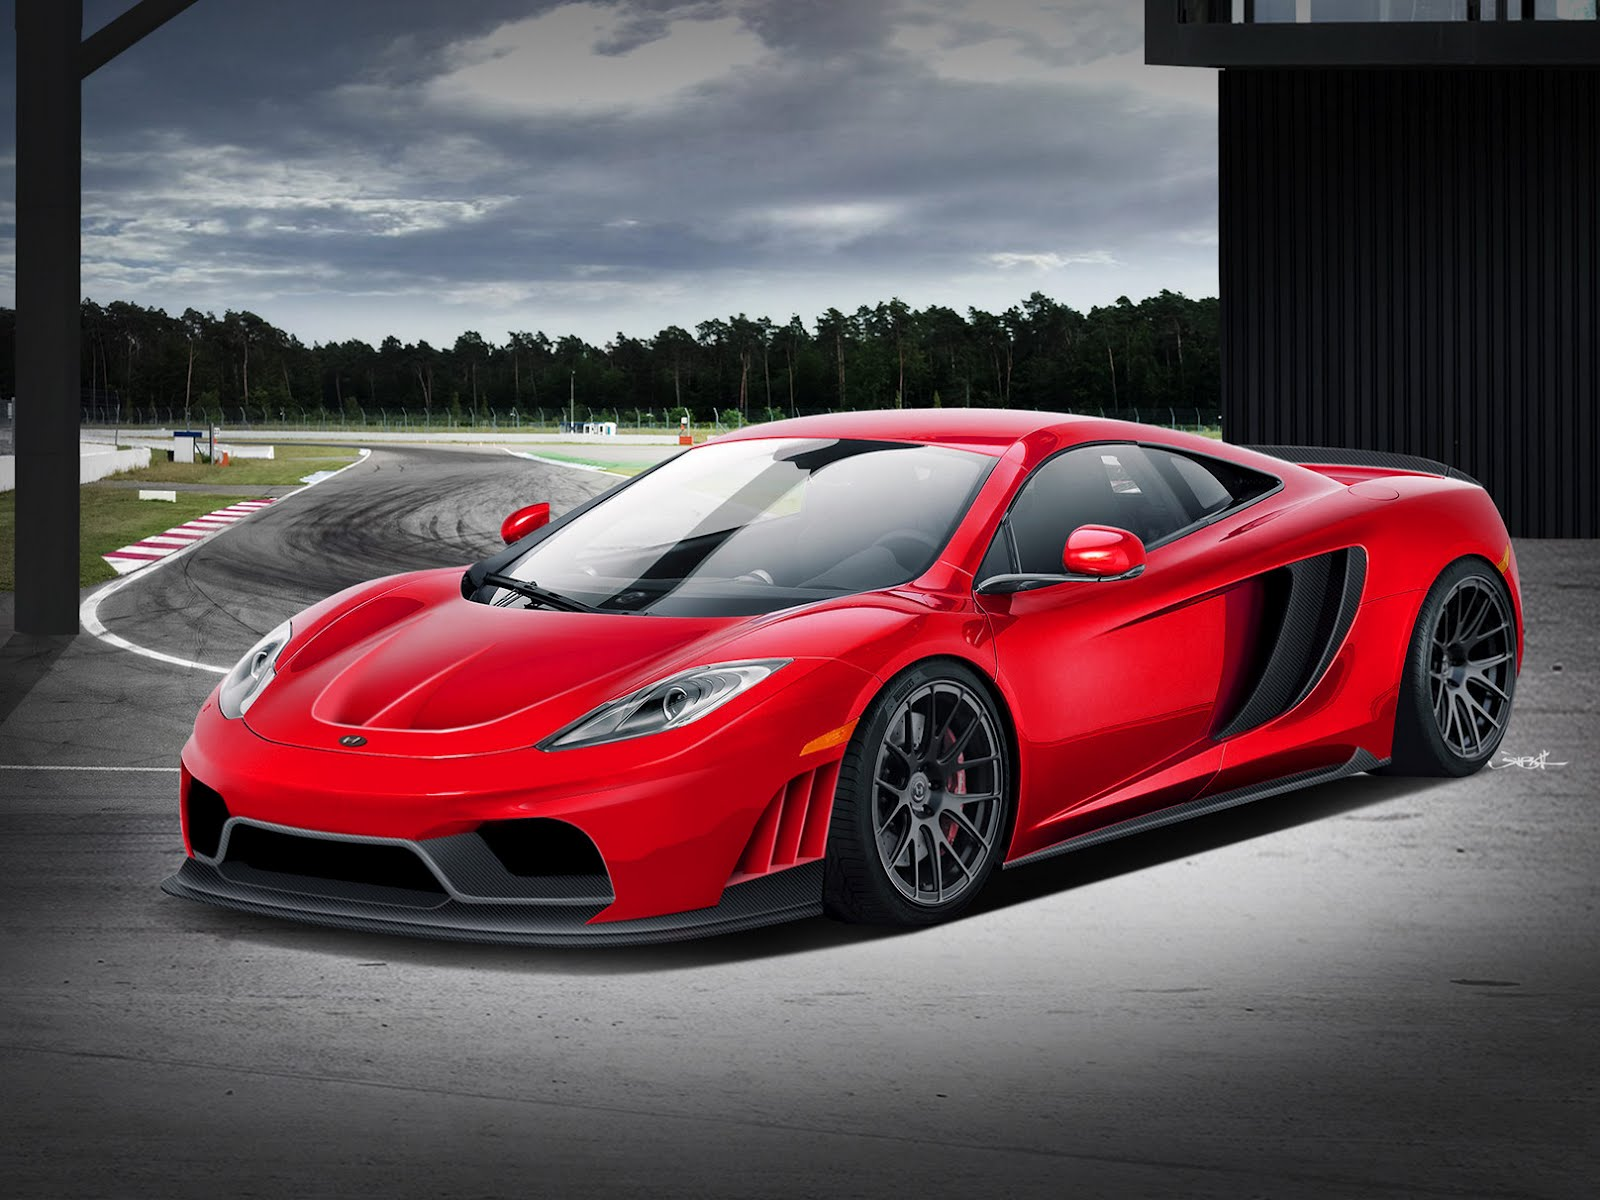 HPE800 McLaren MP4 12C 1 McLaren MP4 12C with an Up to Date Drive train Kit